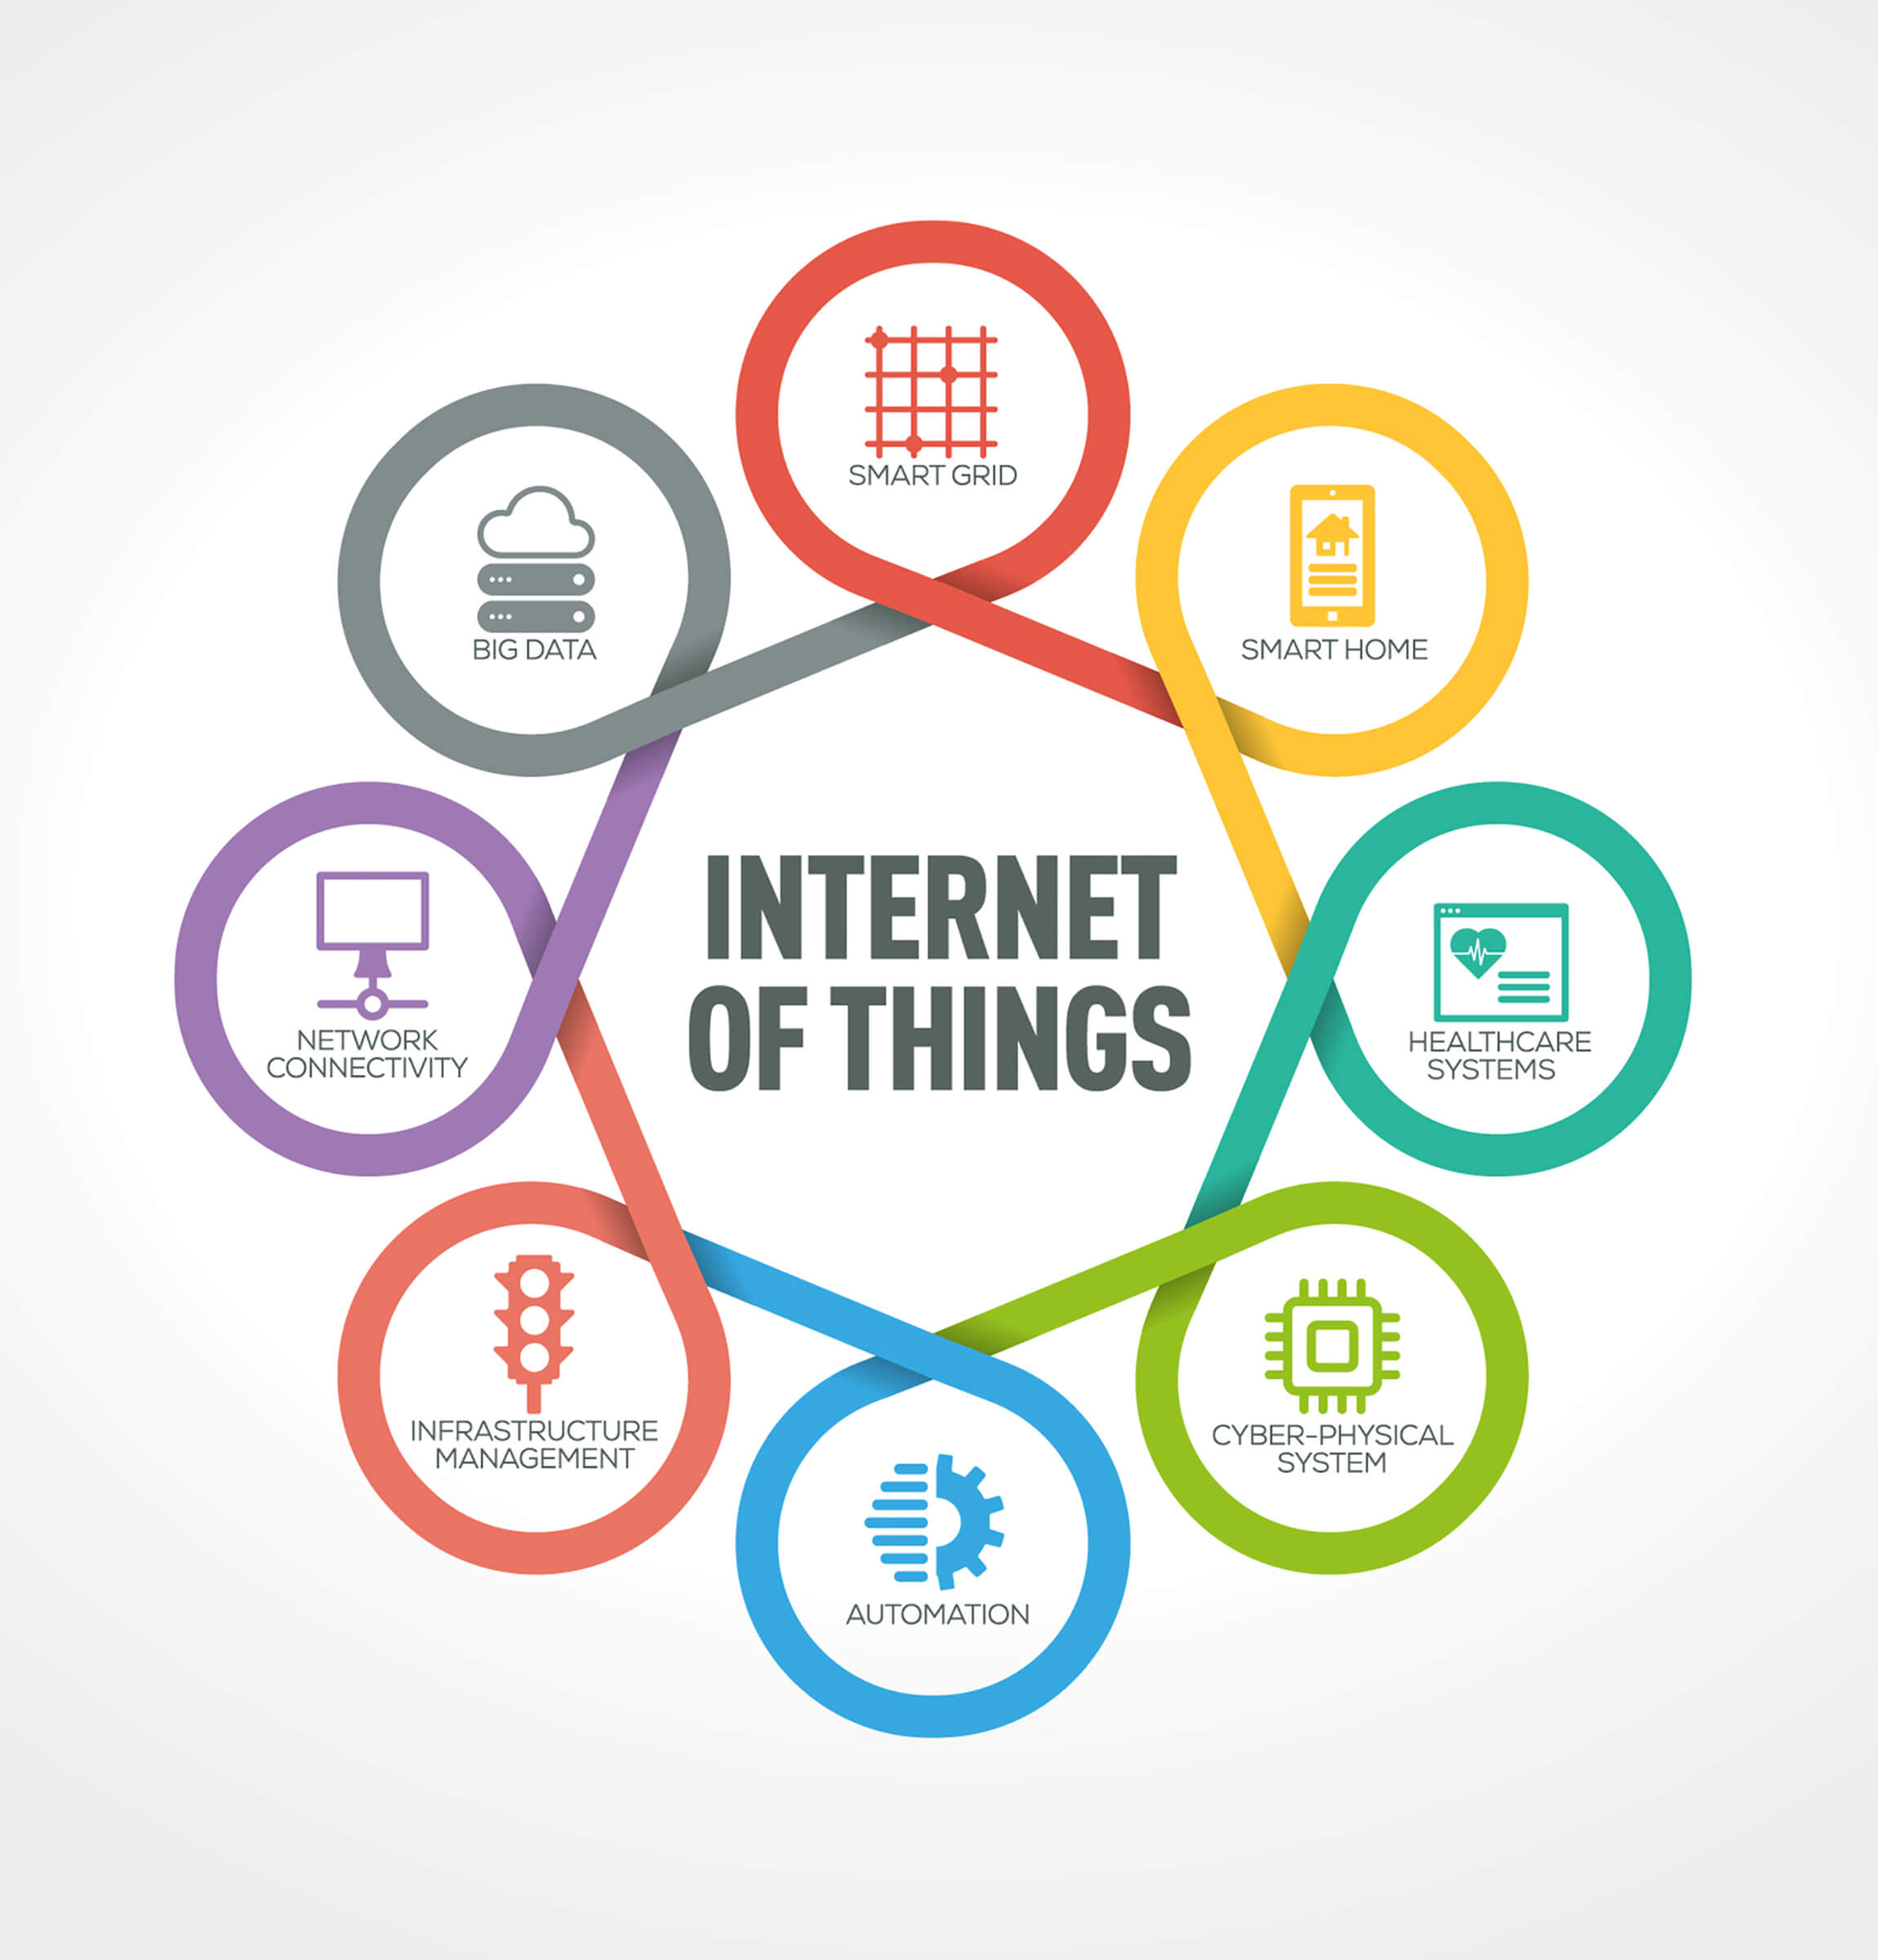 Illustration - internet of things (IoT) is used in big data, smart grid, smart home, healthcare systems, cyber-physical system, automation, infrastructure management, and network connectivity applications.